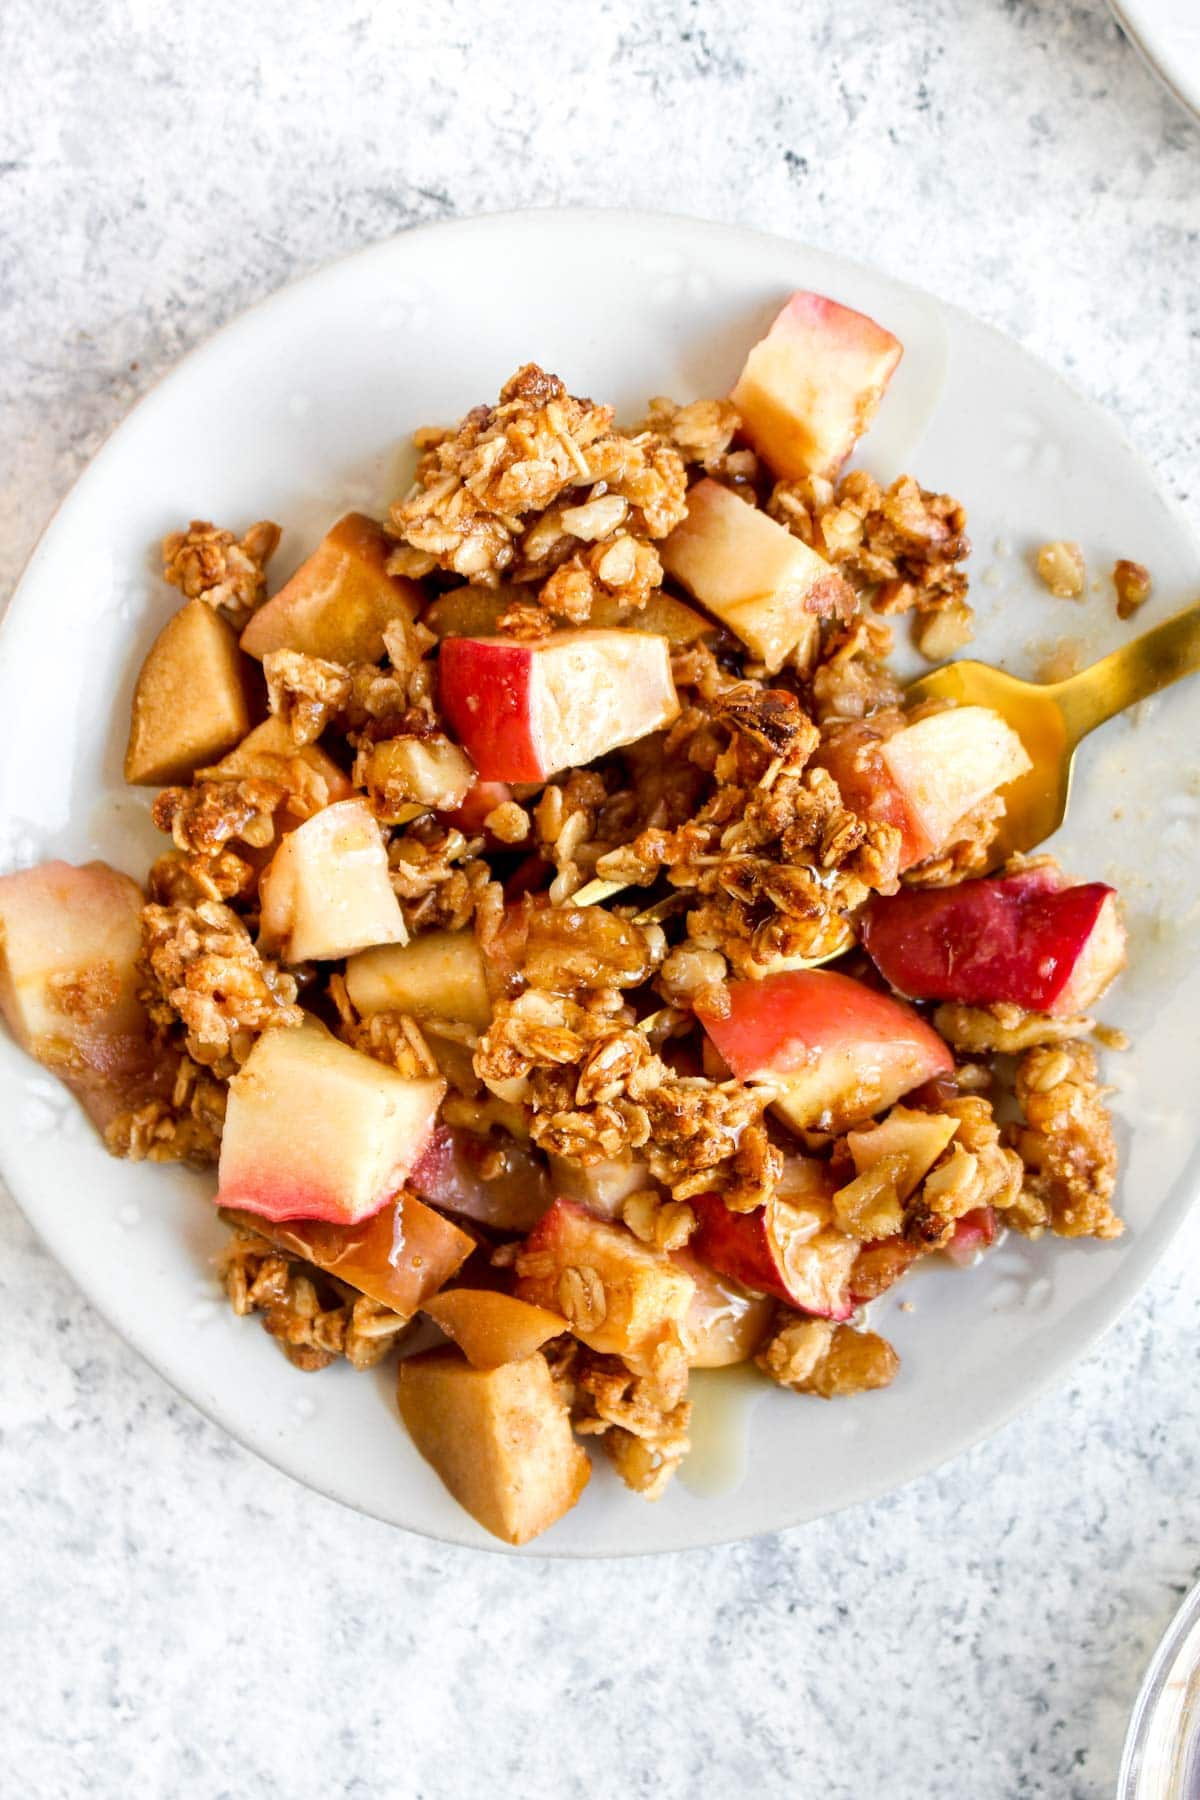 Brunch Apple Crisp with cinnamon and maple strup